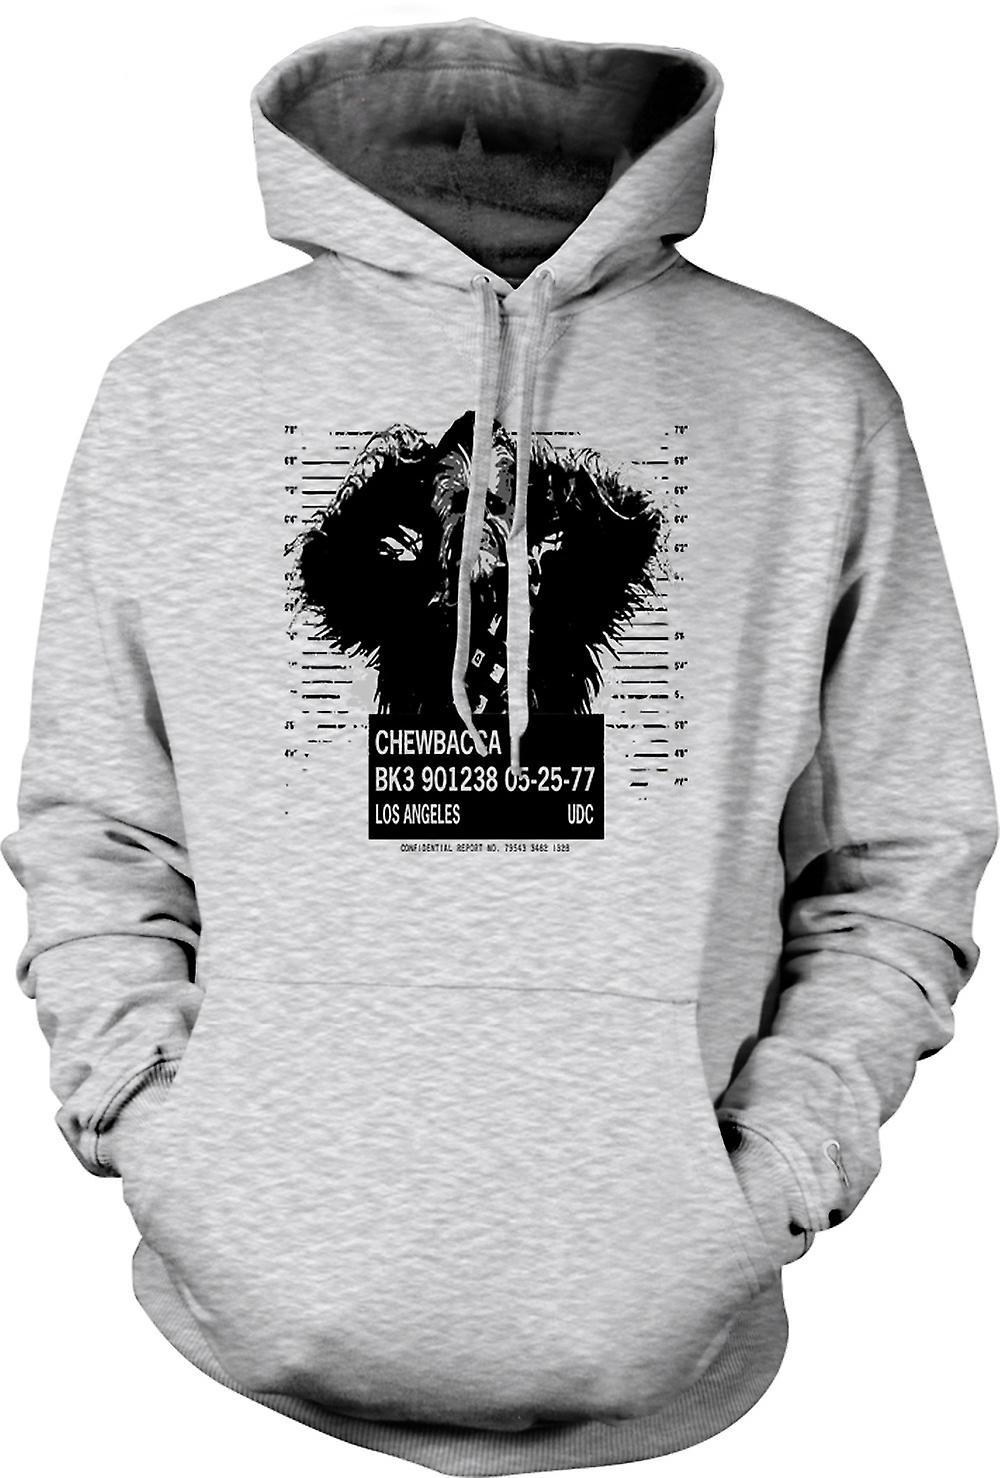 Mens Hoodie - Chewbacca Mug Shot - Star Wars